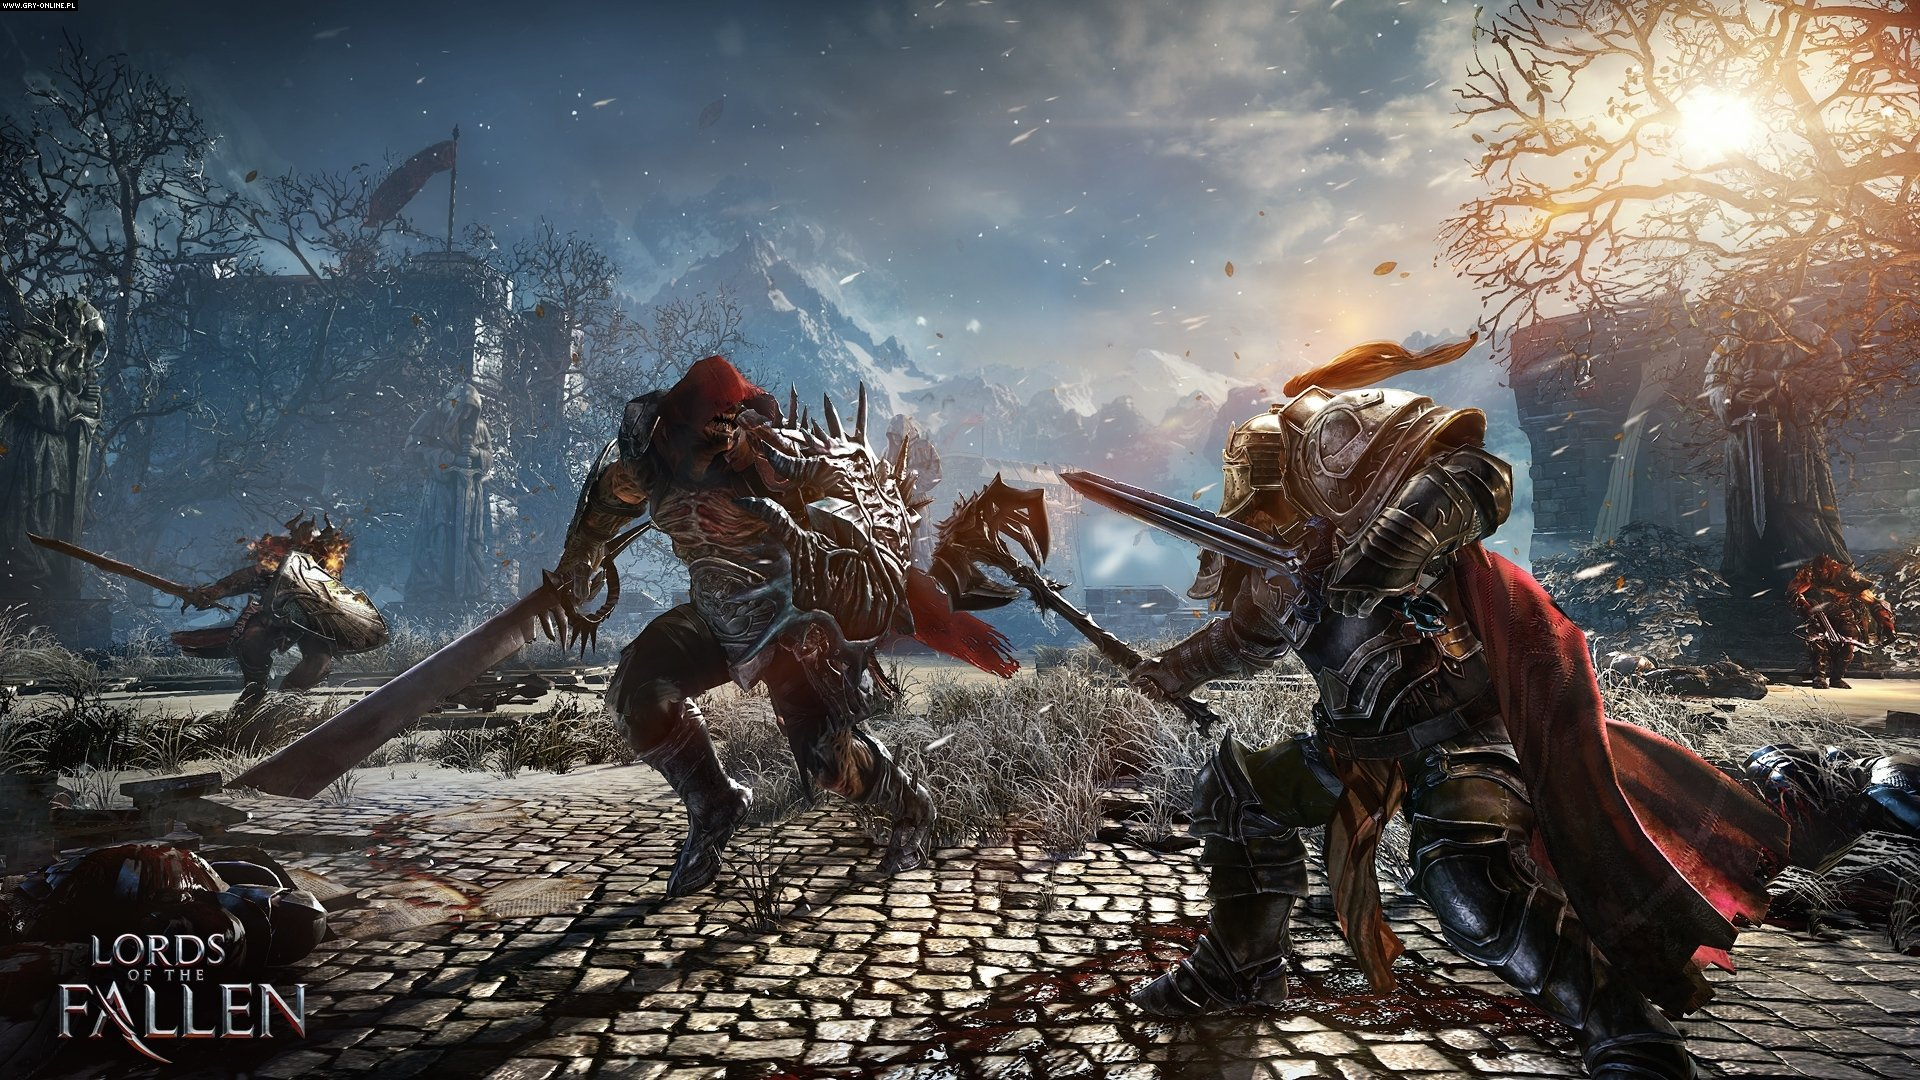 Lords Of The Fallen Hd Wallpaper Background Image 1920x1080